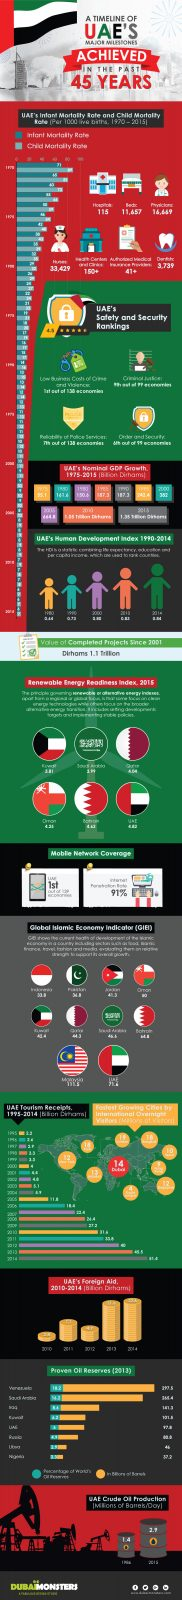 A Timeline of UAE's Major Milestones Achieved In The Past 45 Years – Infographics